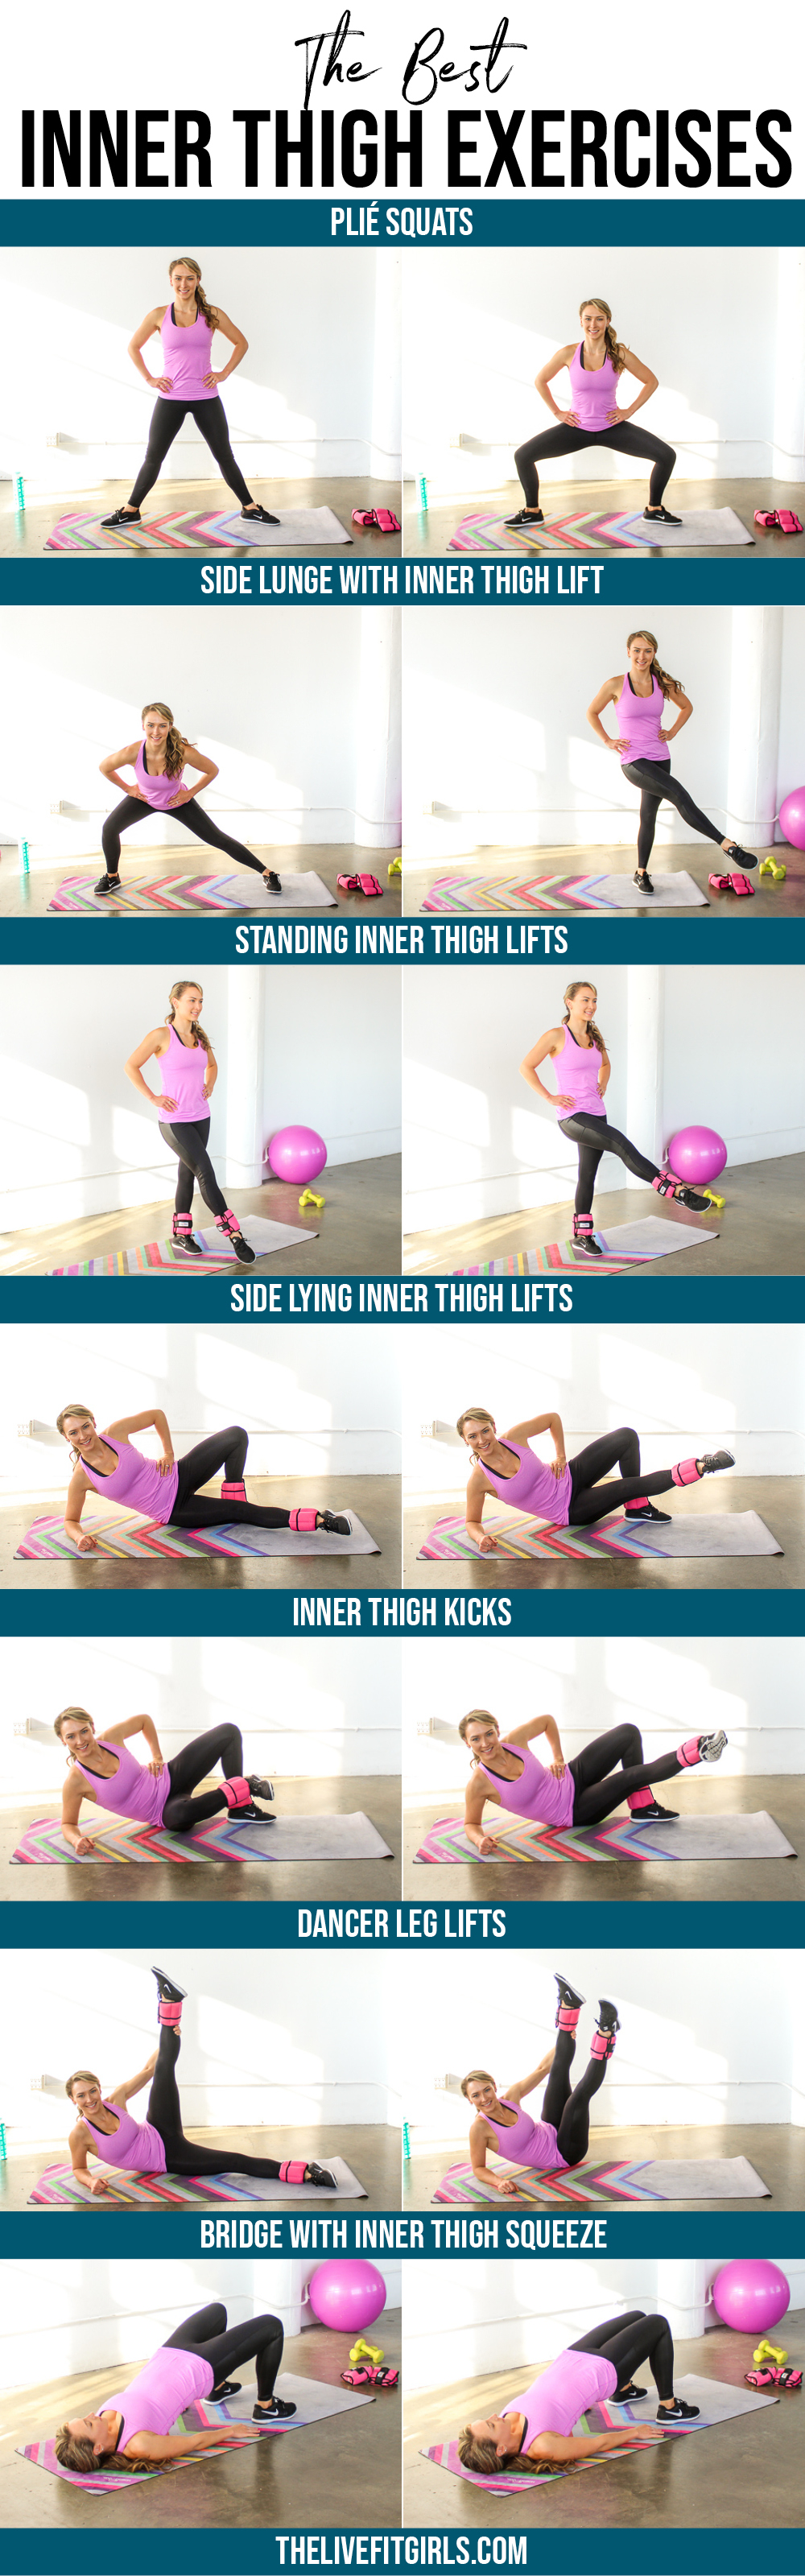 Inner Thigh Exercises • The Best Inner Thigh Workout Pertaining To Free Printable Program For Inner Thights